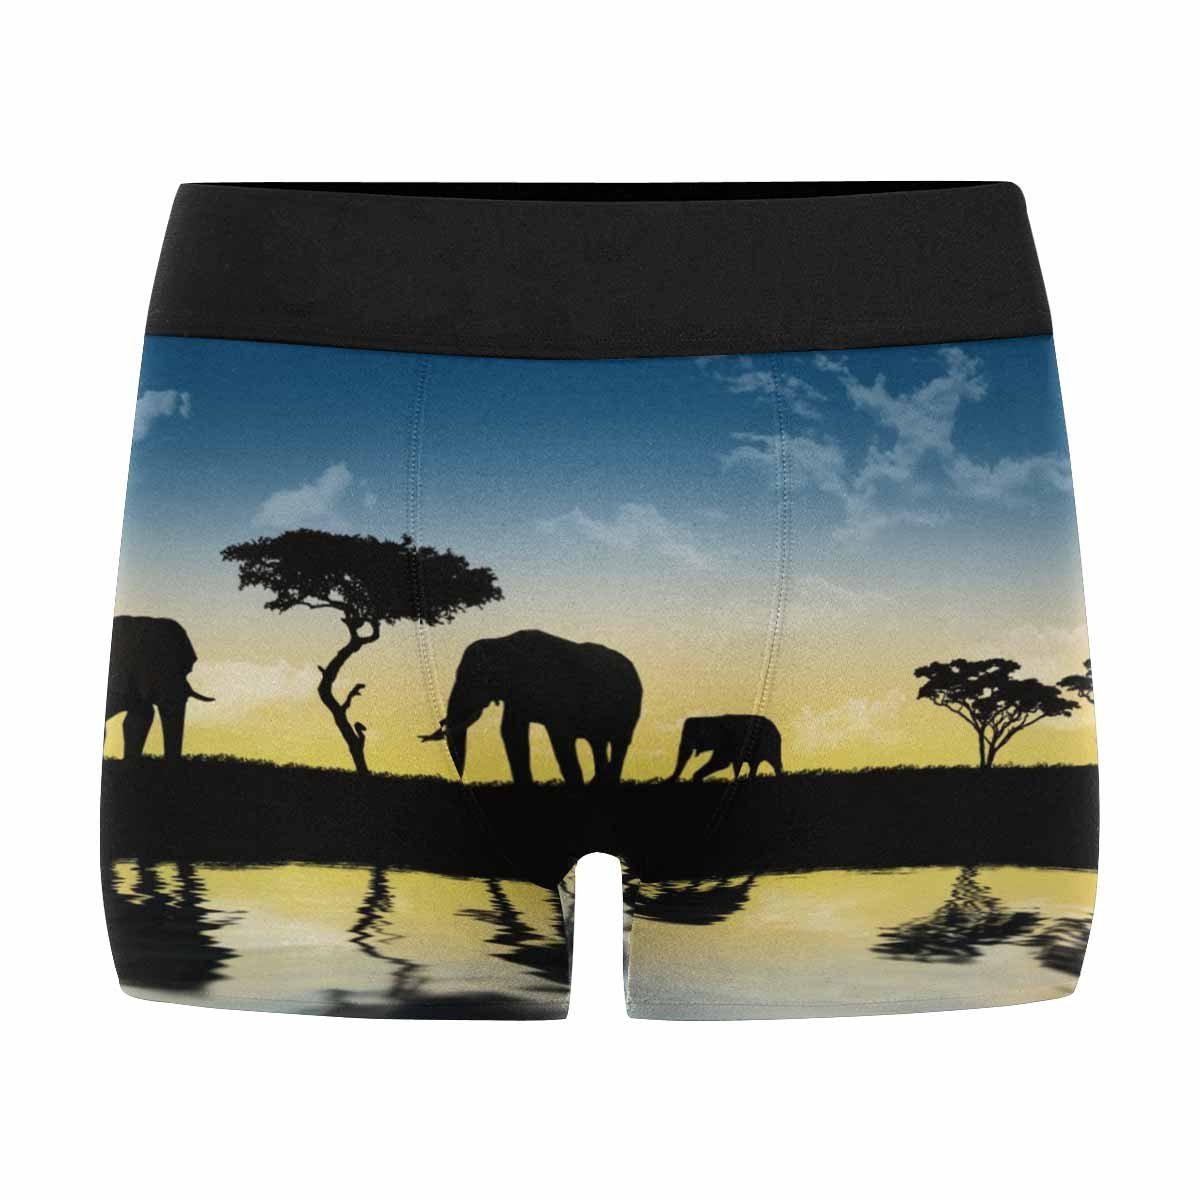 Silhouette of Wild Animals Reflection in Water INTERESTPRINT Mens All-Over Print Boxer Briefs Safari in Africa XS-3XL